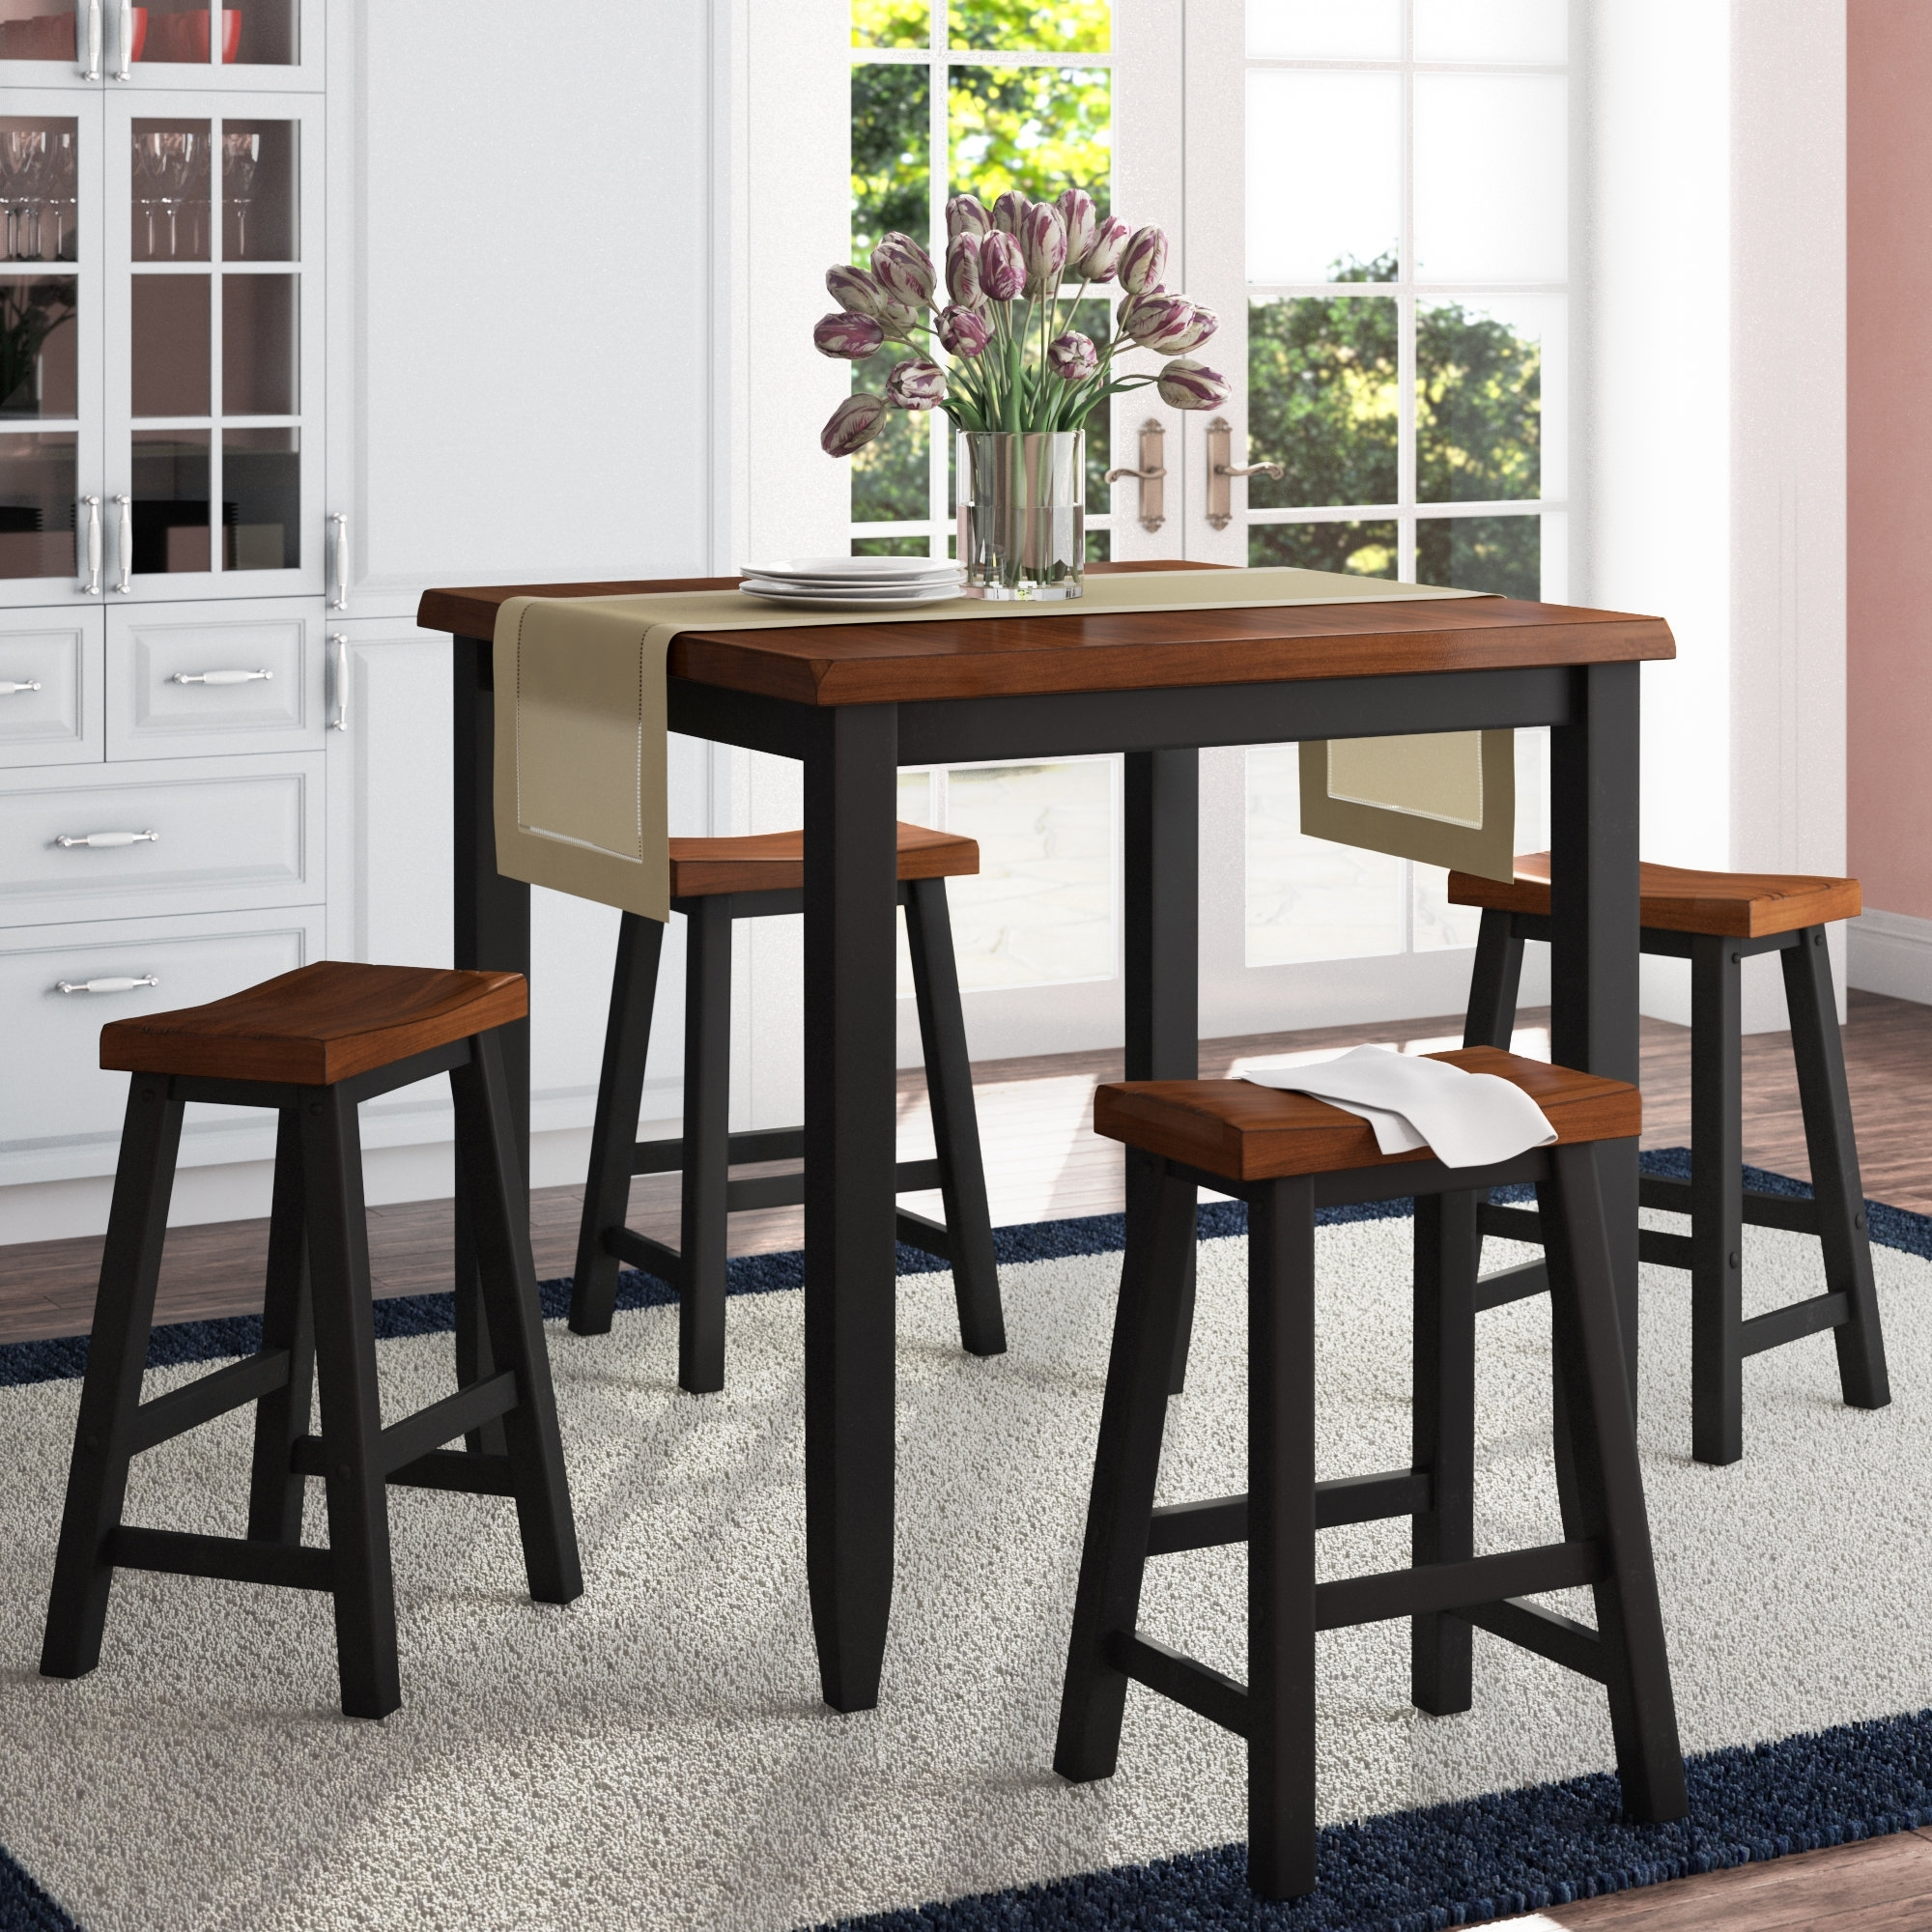 Darby Home Co Simmons Casegoods Ruggerio 5 Piece Counter Height Pub With Regard To 2018 Jaxon 5 Piece Round Dining Sets With Upholstered Chairs (Image 4 of 20)